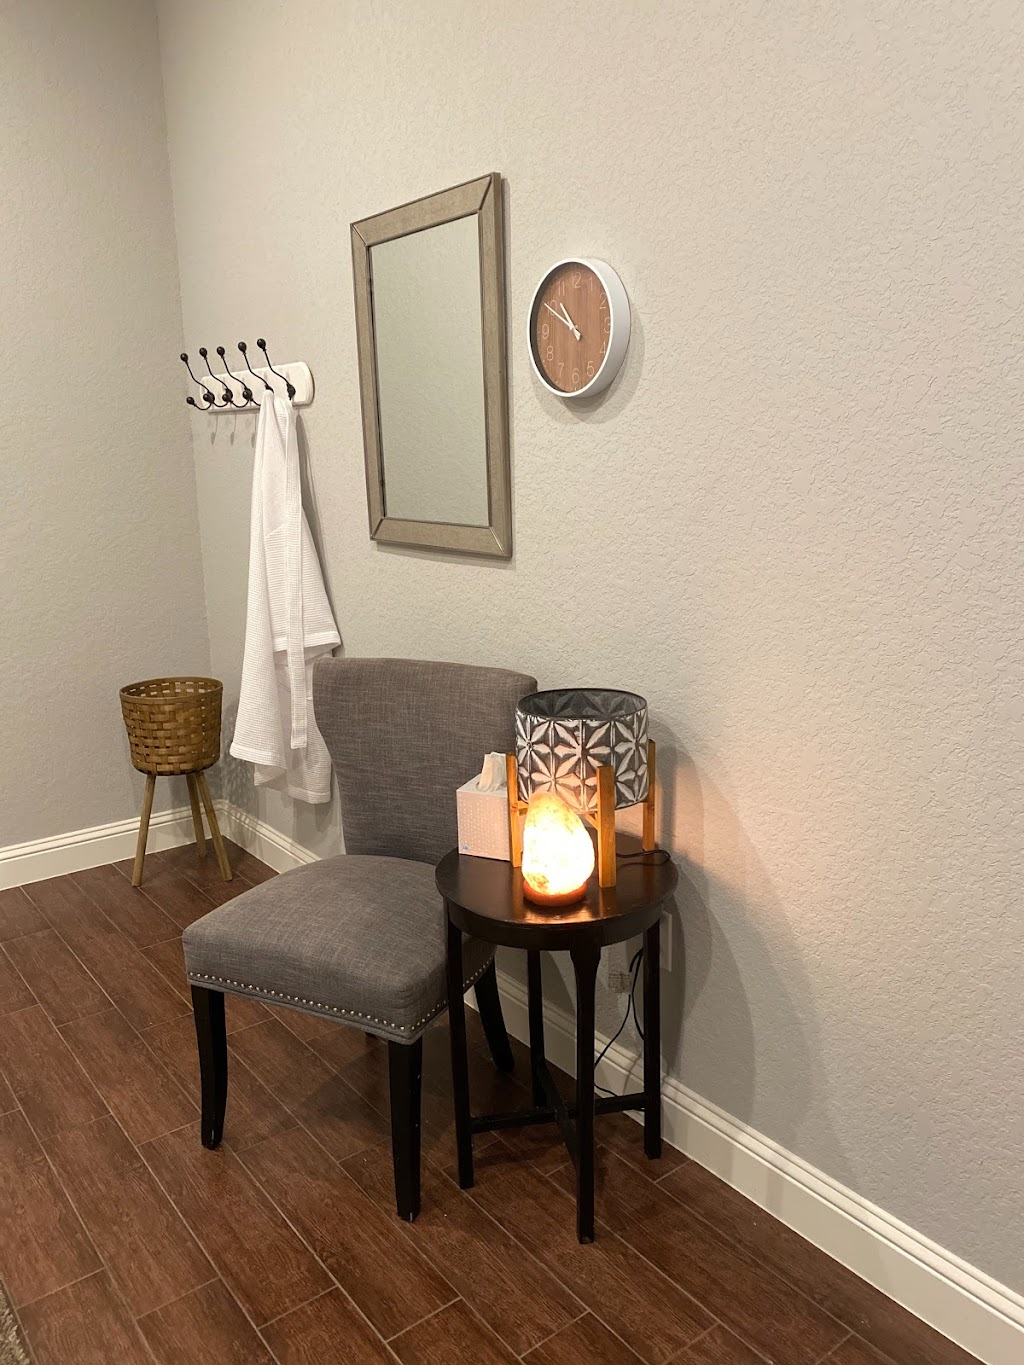 Elan Med Spa & Clinic - spa  | Photo 1 of 10 | Address: 1795 N Hwy 77 Suite 105, Waxahachie, TX 75165, USA | Phone: (972) 525-0800